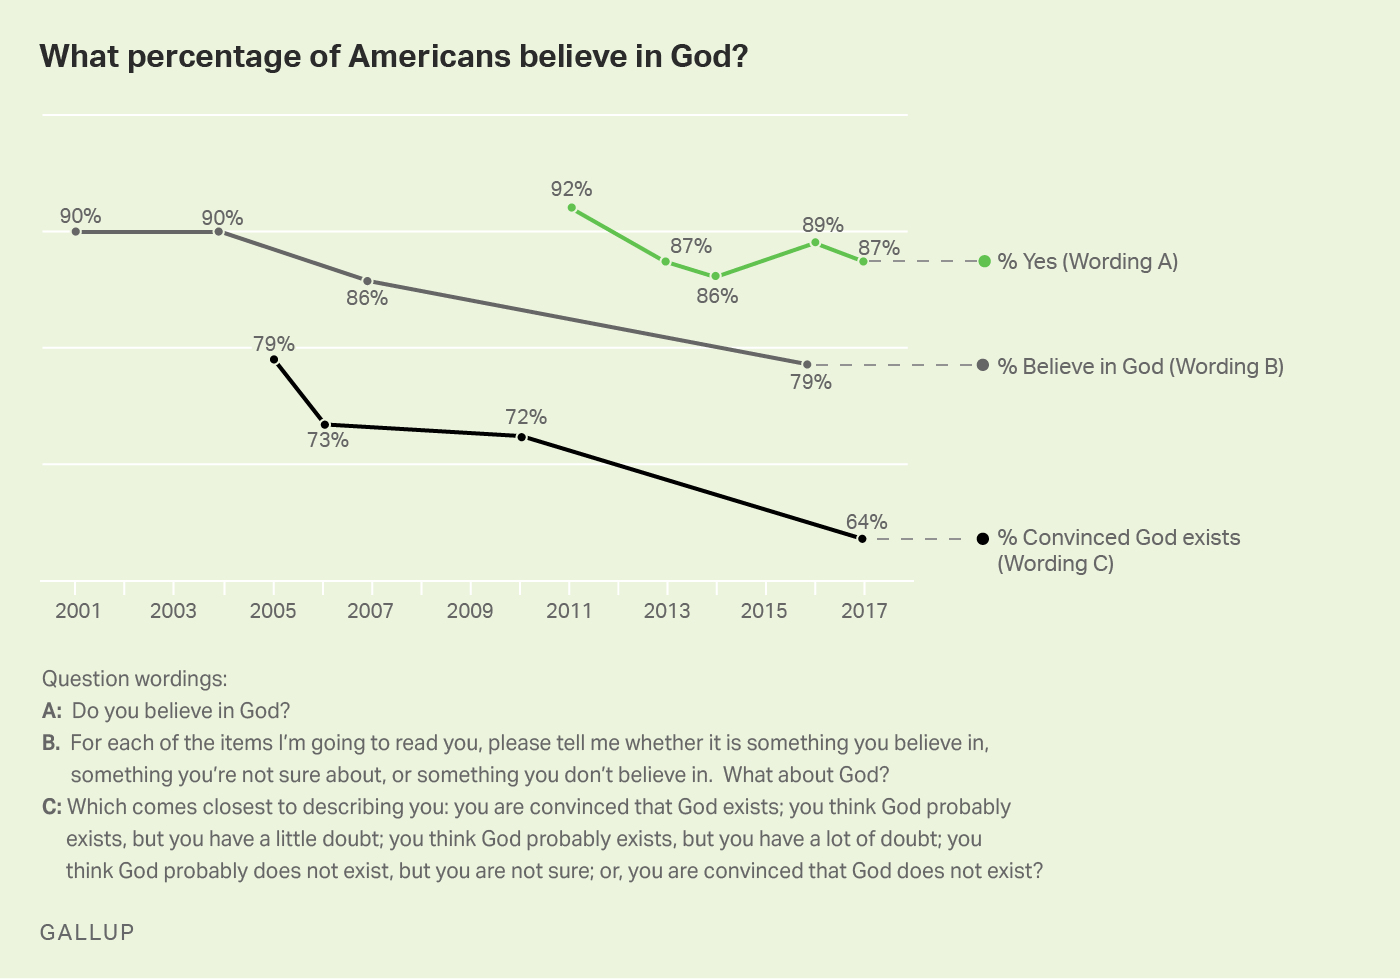 Line graph. The percentage of Americans who believe in God, based on three different survey questions.